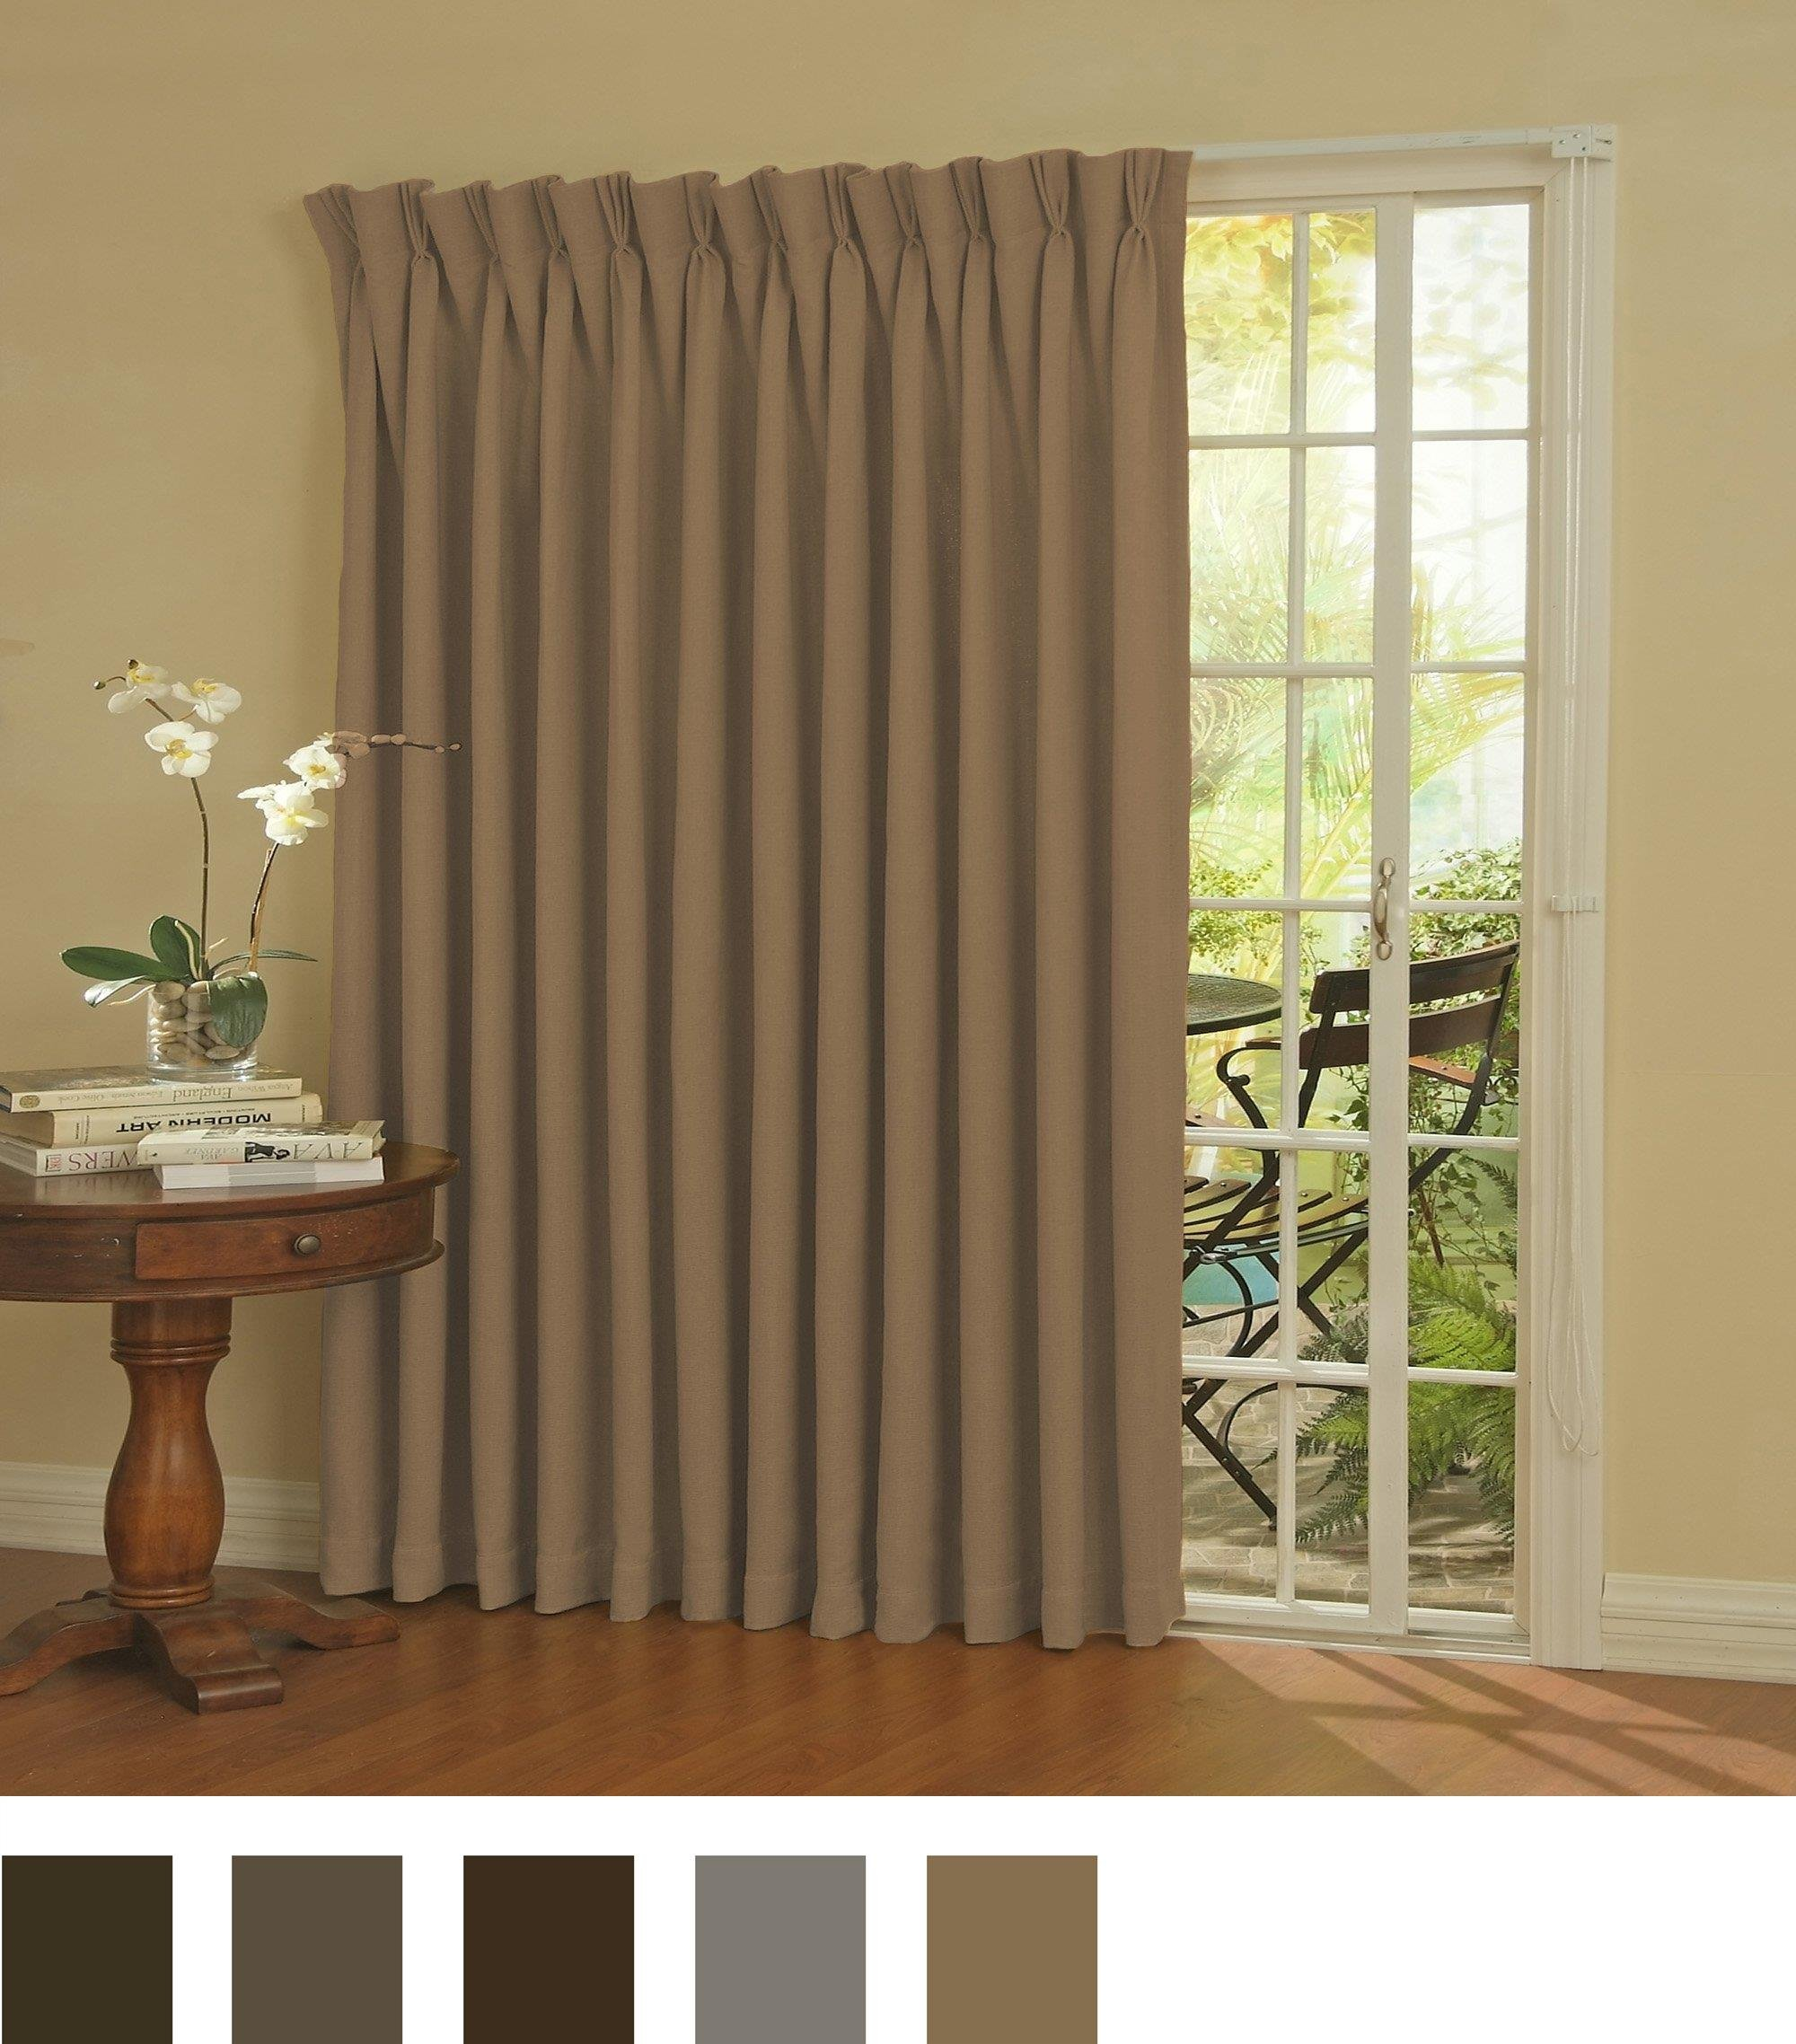 eclipse thermal blackout patio door curtain panel 100 39 39 x 84 39 39 wheat 689550535646 ebay. Black Bedroom Furniture Sets. Home Design Ideas